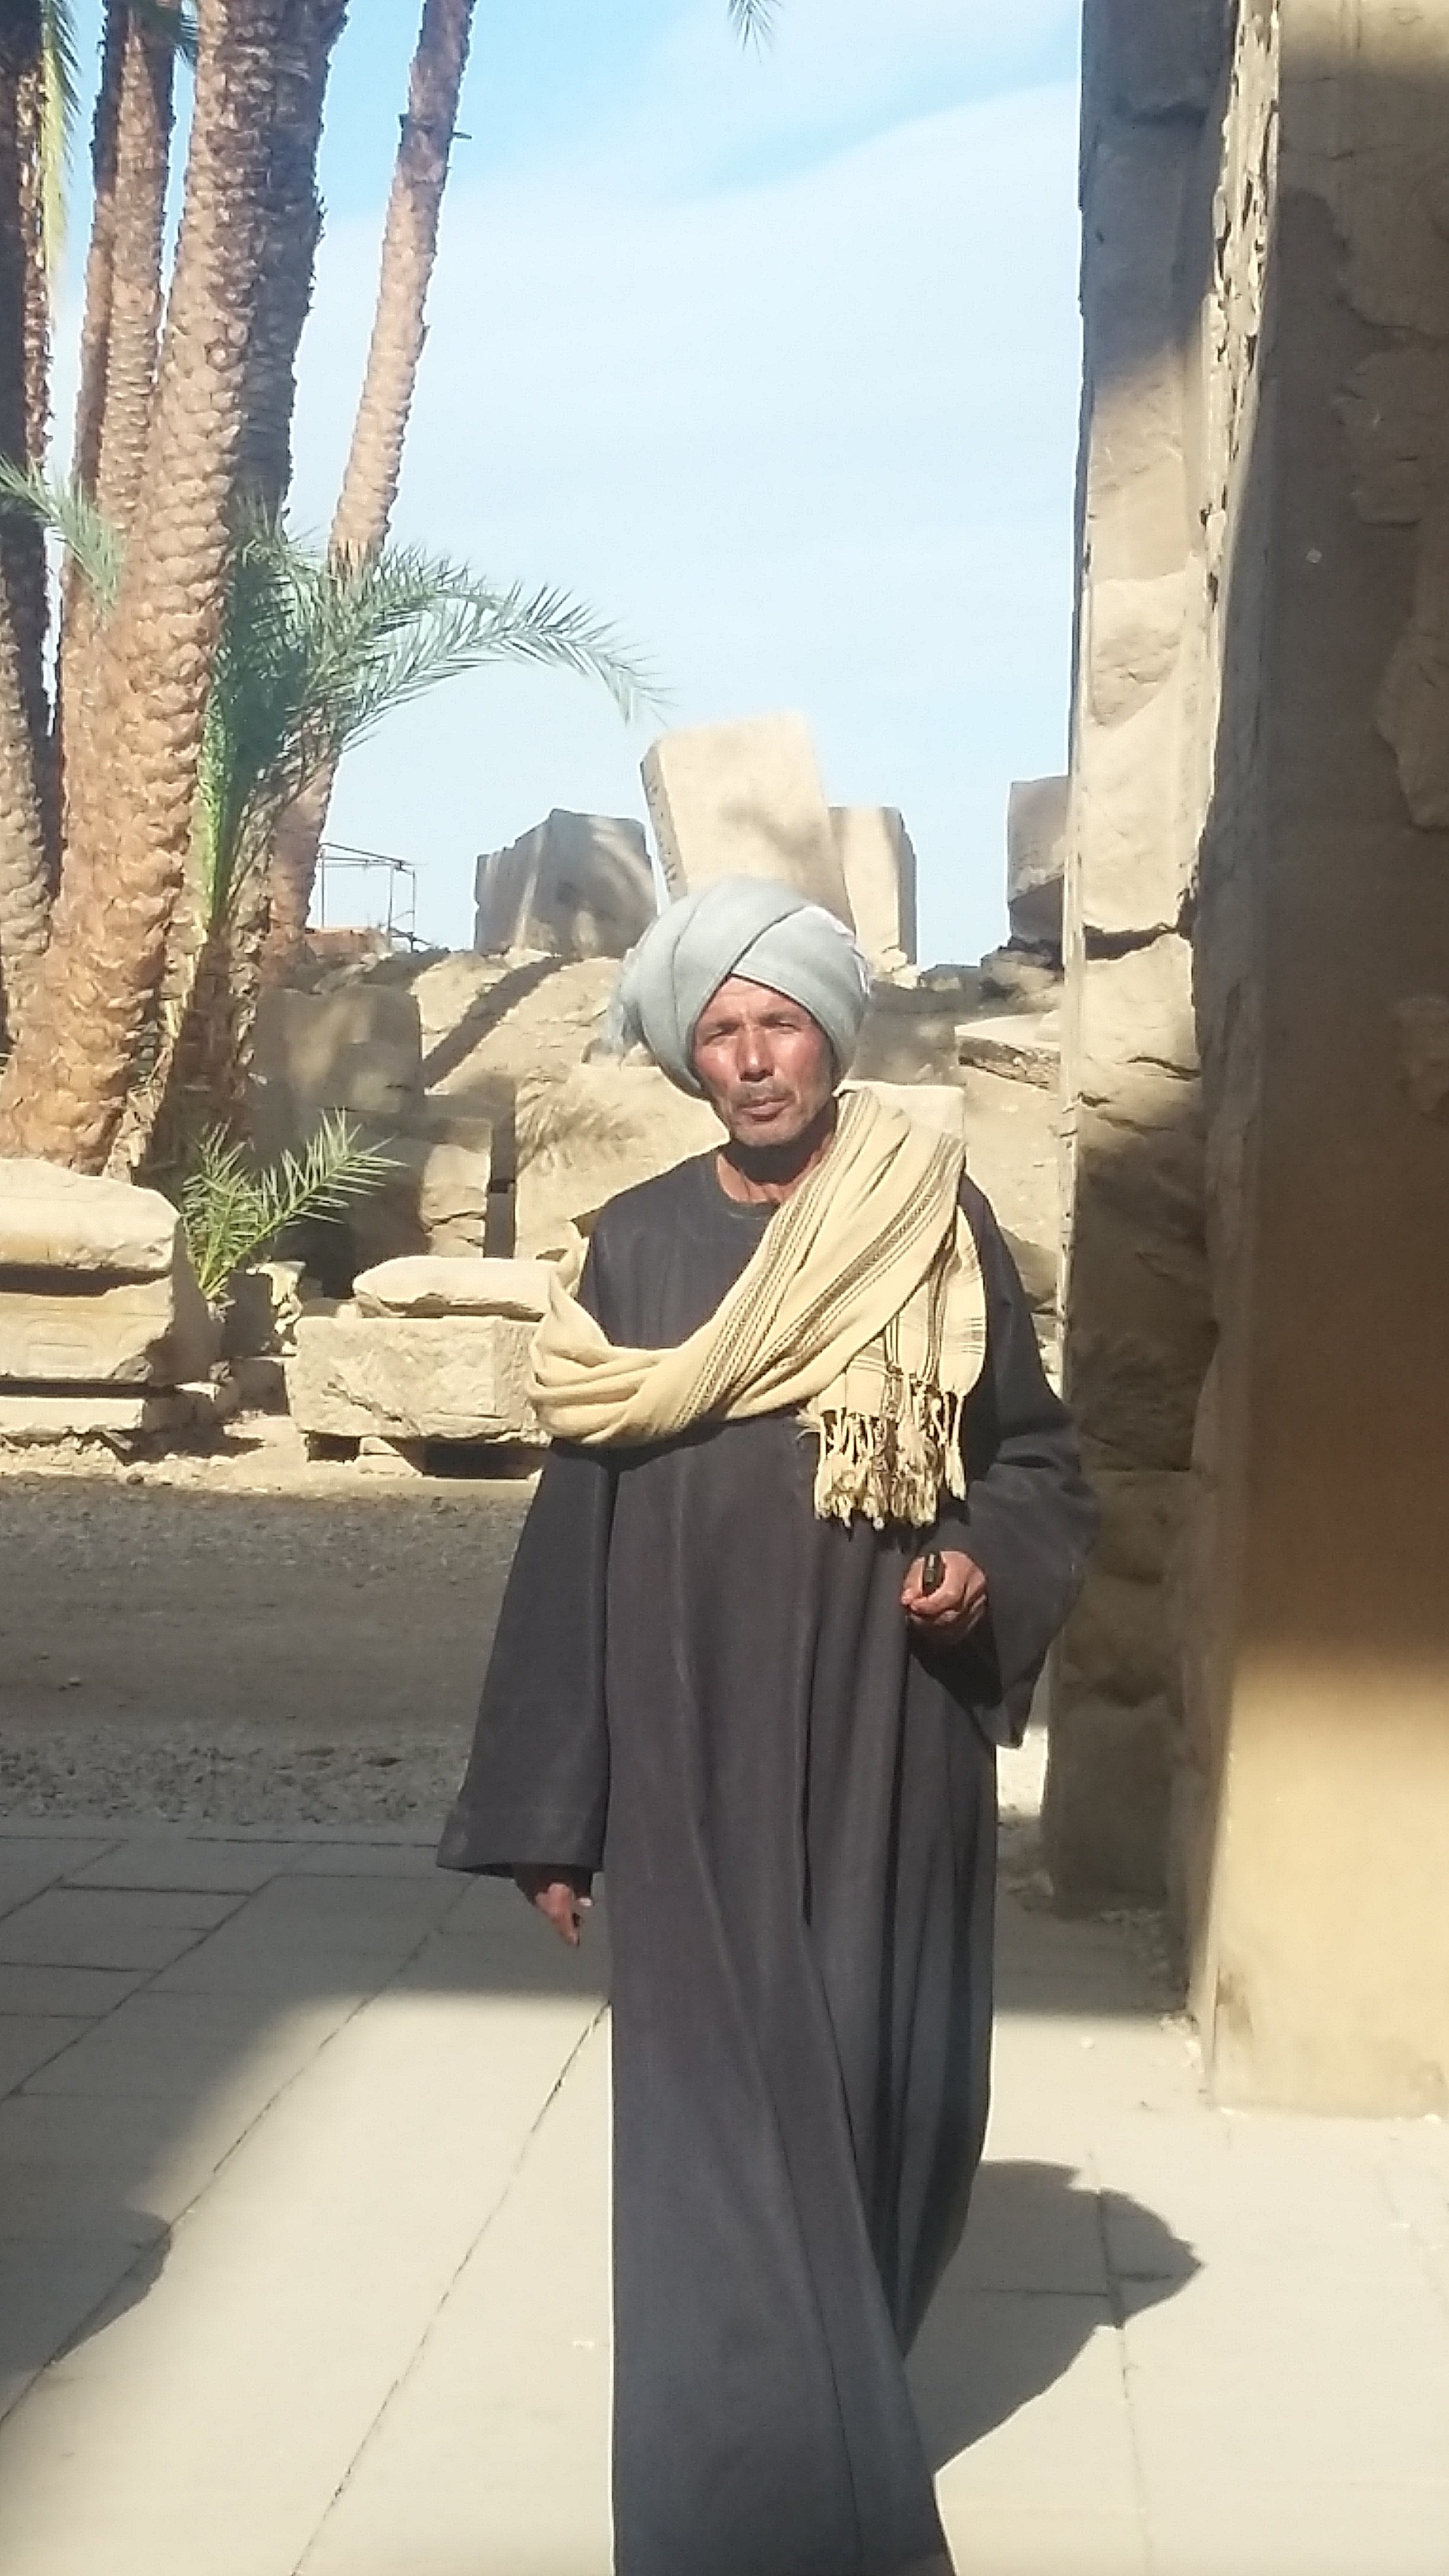 Guard at Karnak temple